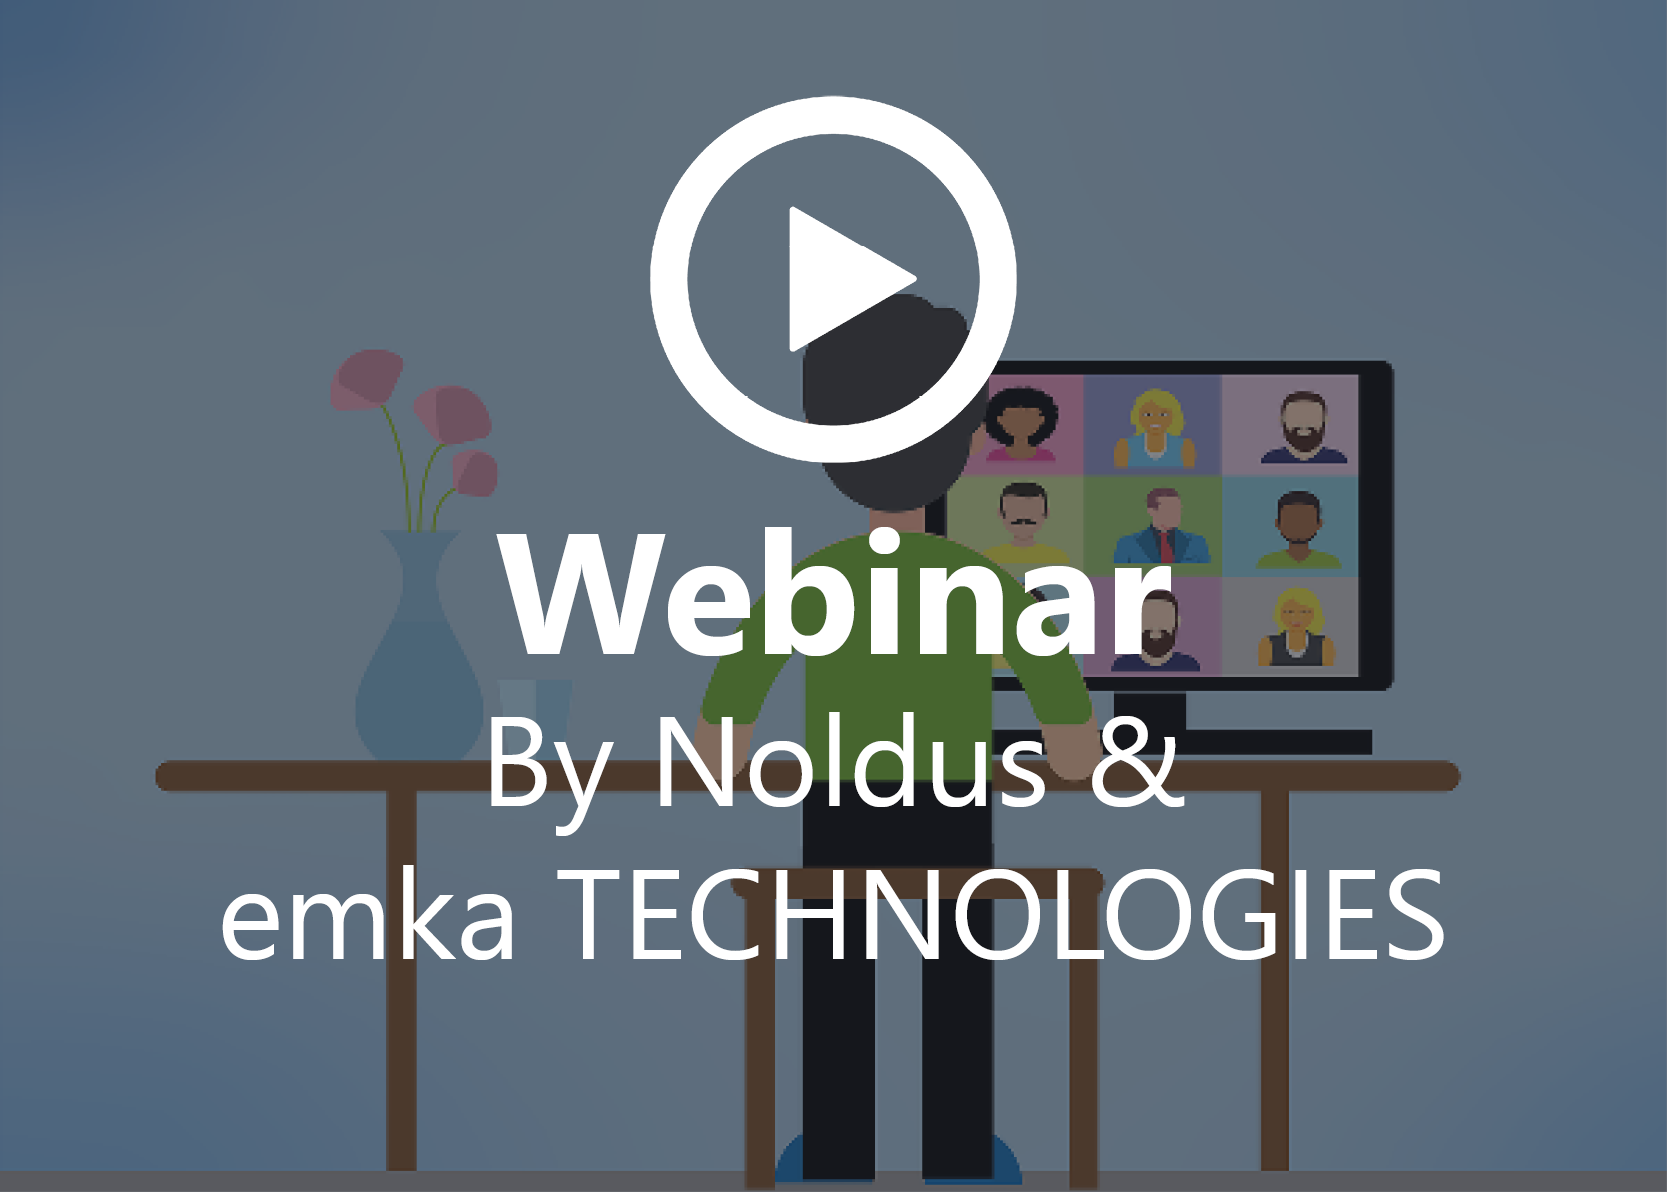 Noldus-emka webinar on demand